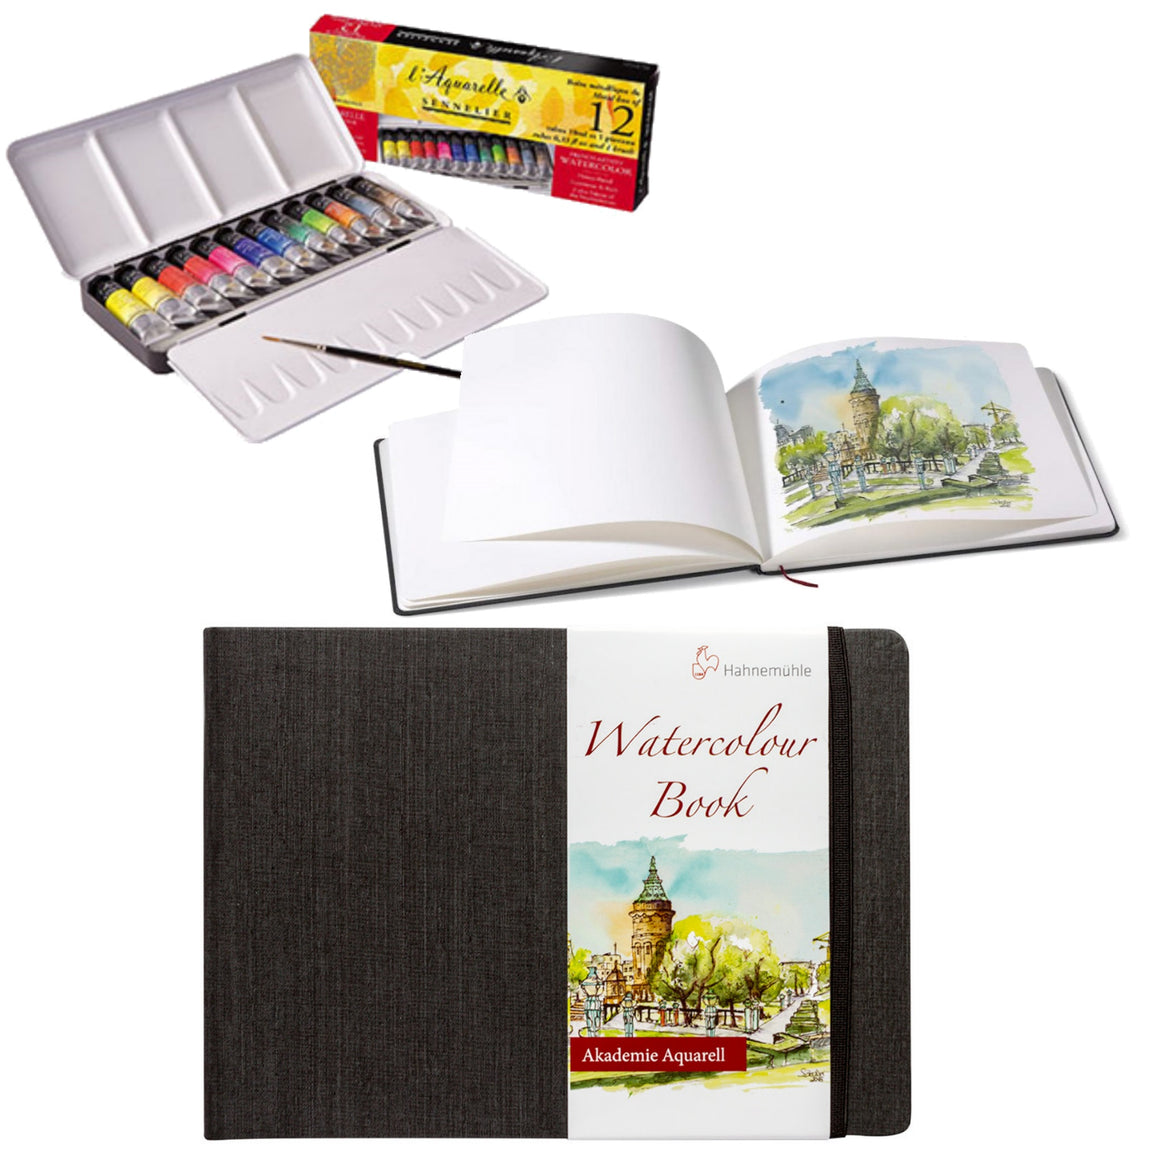 The Sennelier watercolour and Hahnemuhle book is perfect for travelling.  The set includes:  1x Sennelier Watercolour Travel Set in a metal box with 12 x 10ml tubes. 1x Hahnemuhle Watercolour Book A4 landscape